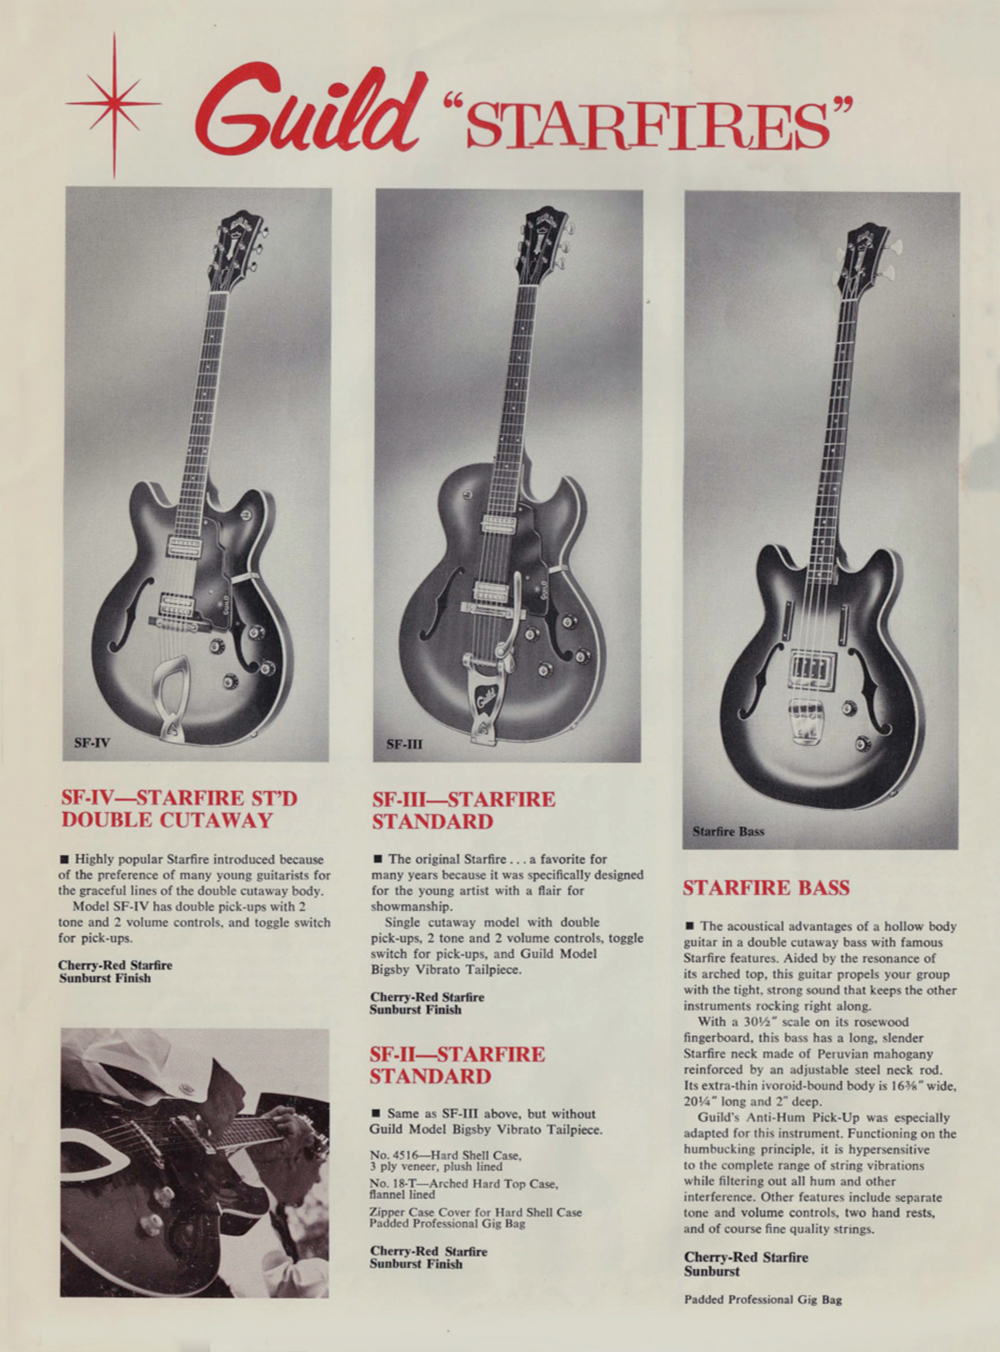 A page view of the 1966 catalog